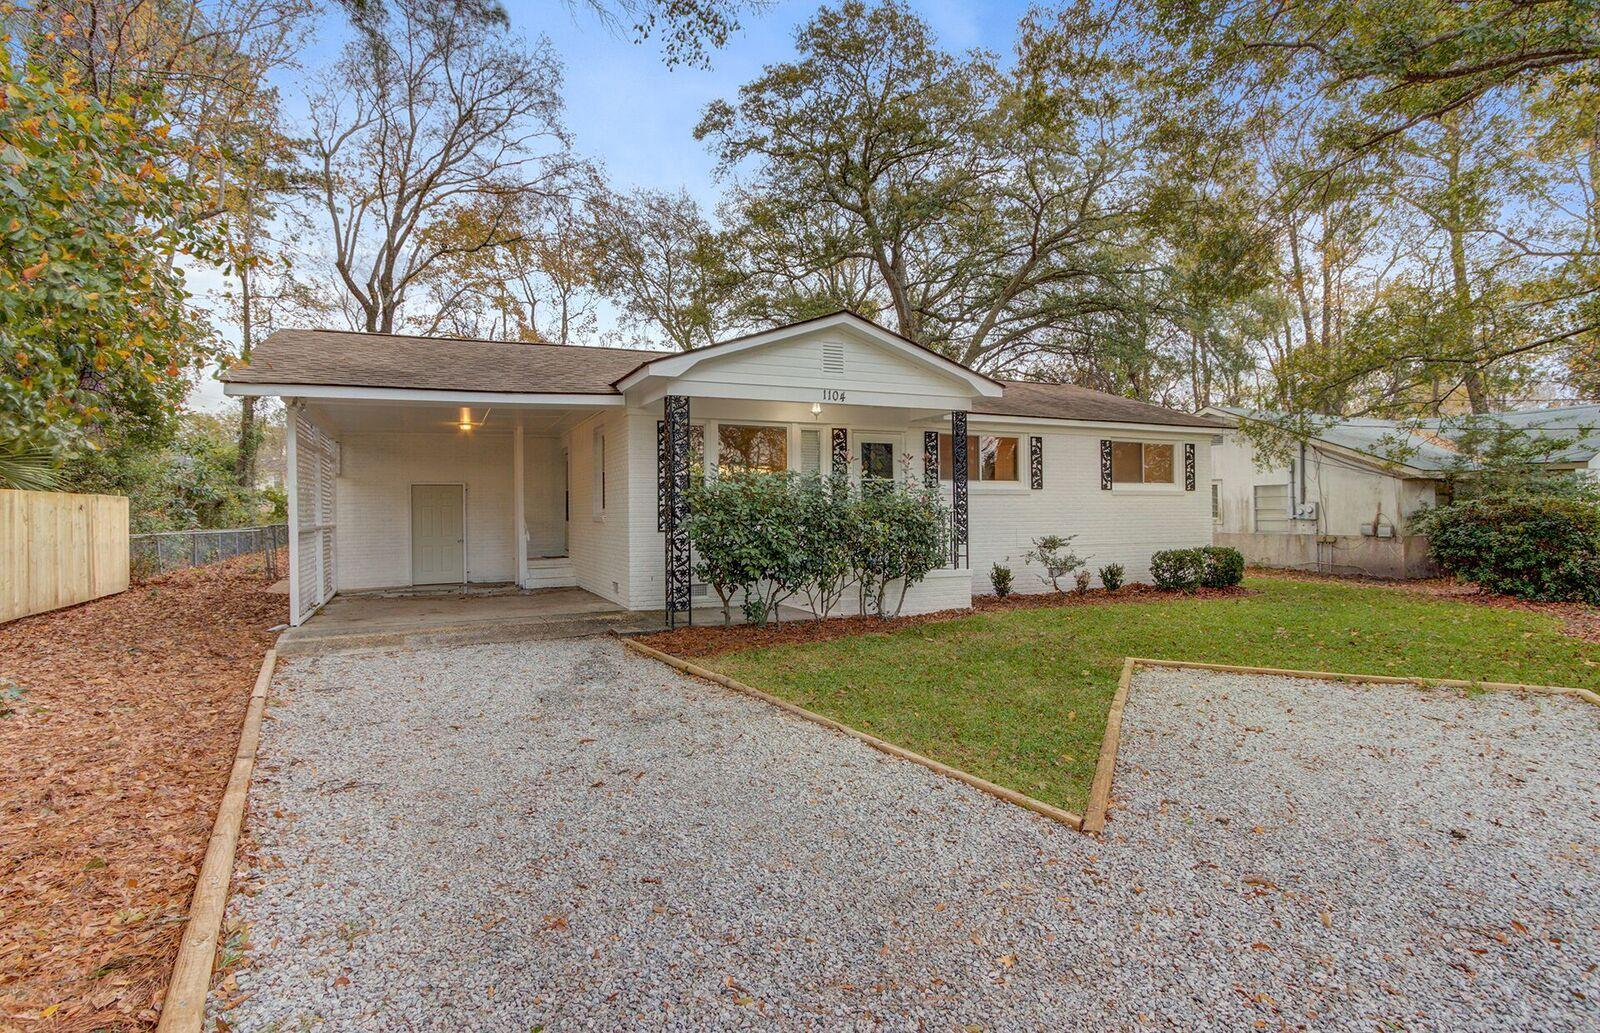 West Glow Homes For Sale - 1104 Crull, Charleston, SC - 0